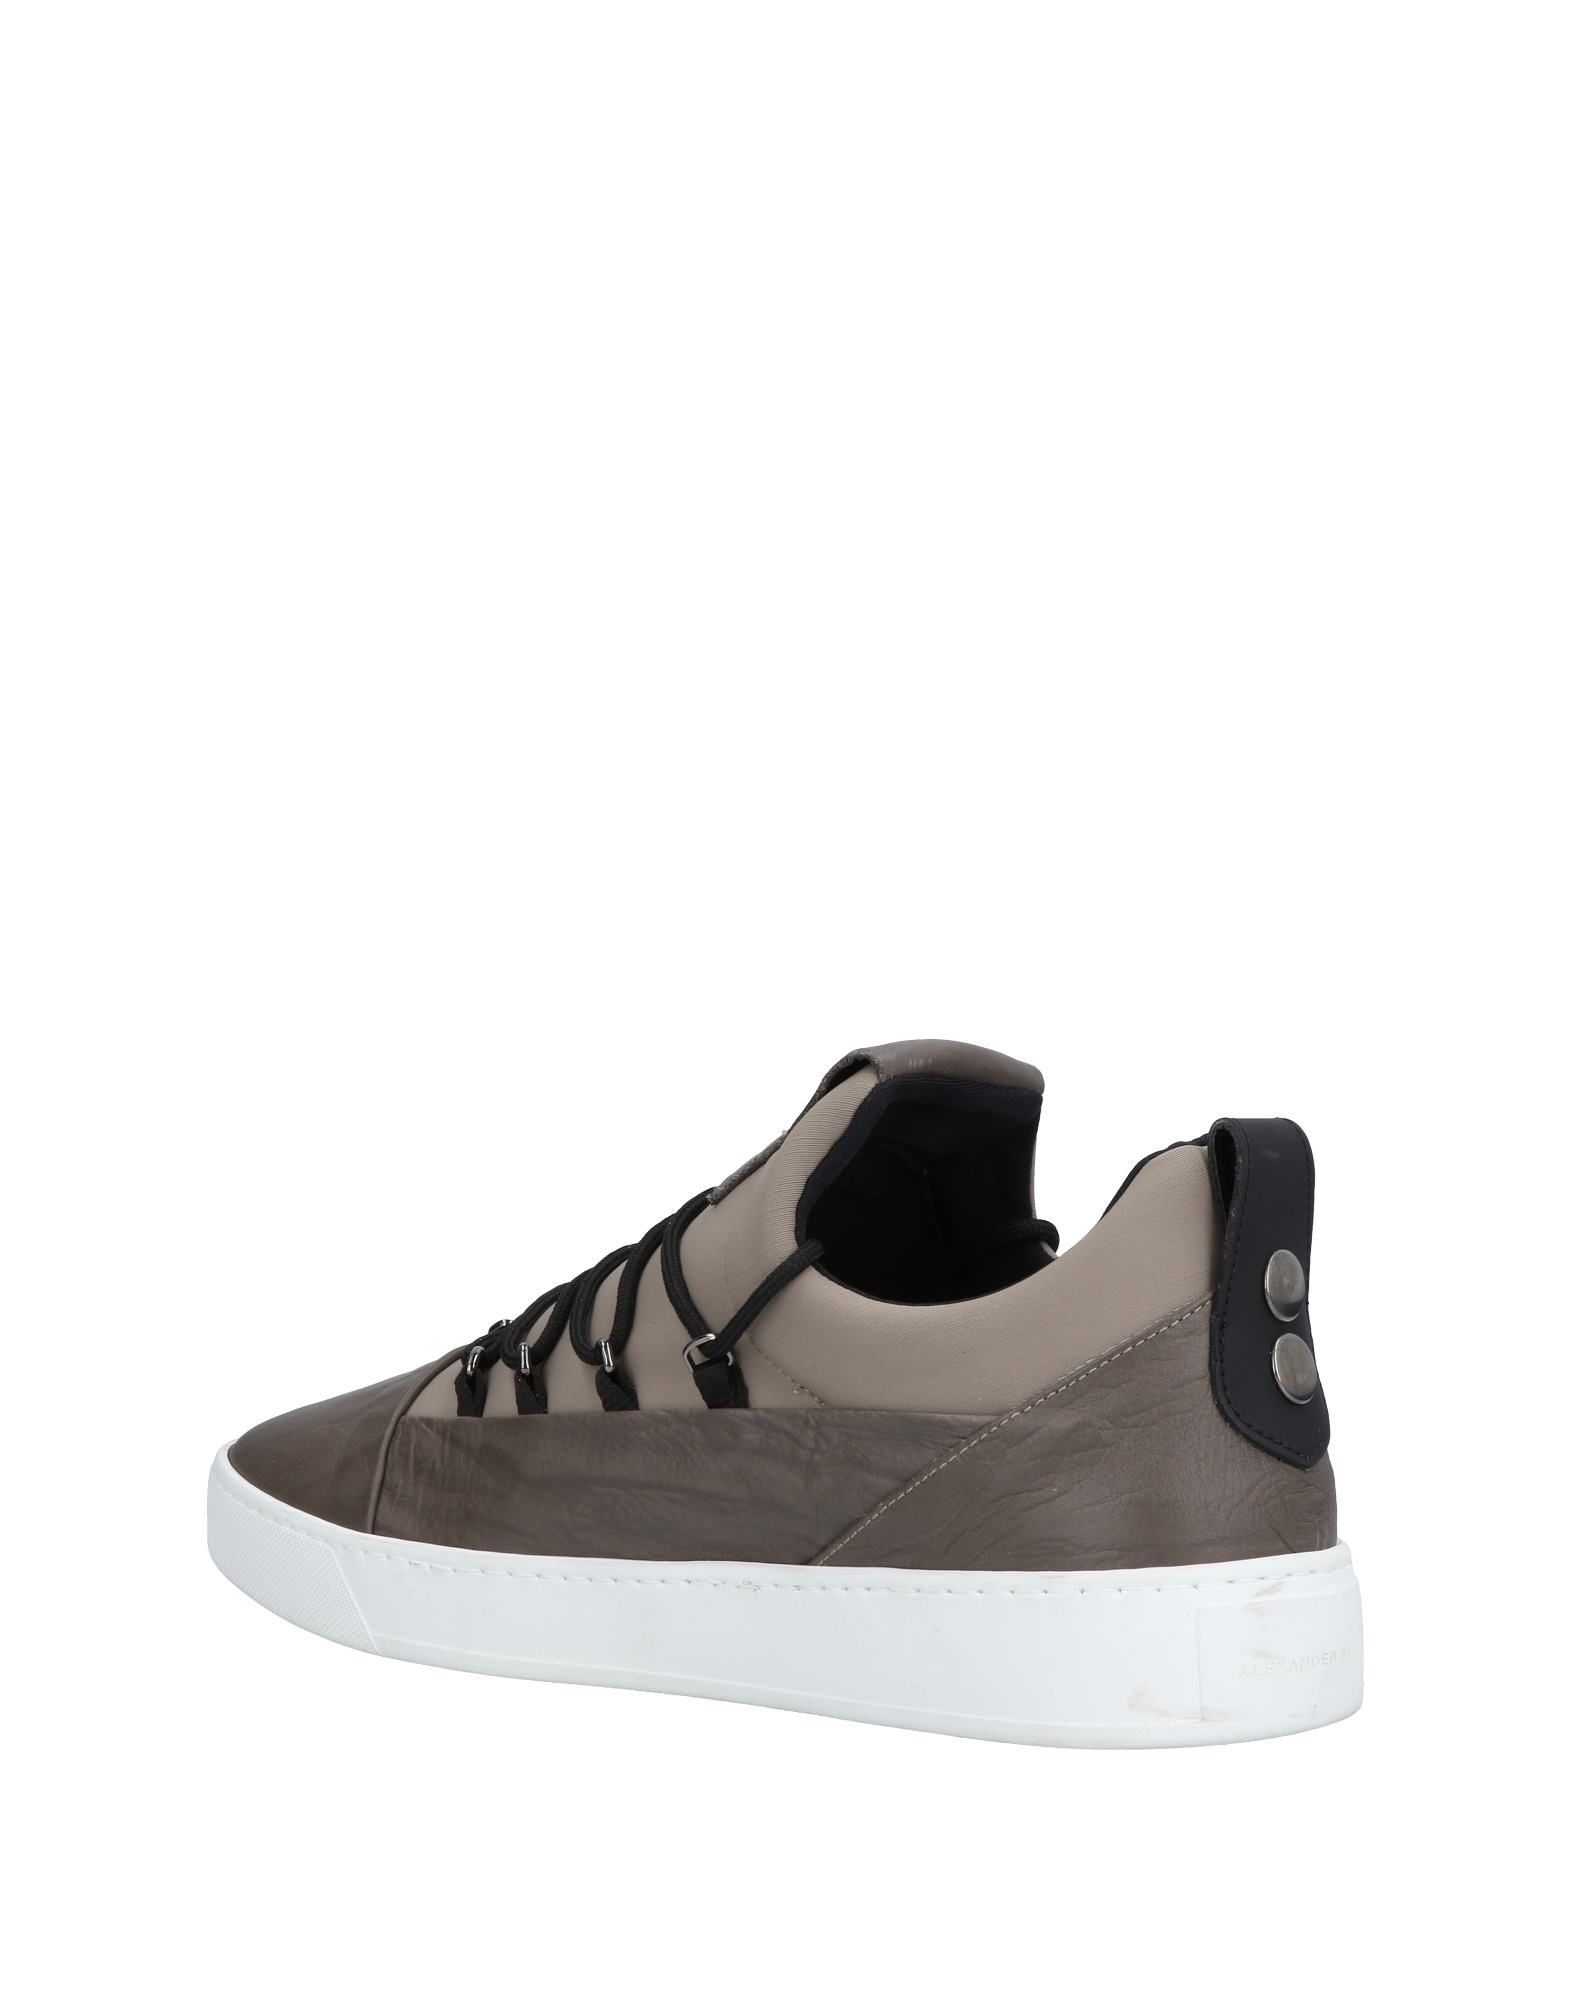 Alexander Smith Sneakers Herren  11483845IS Neue Schuhe